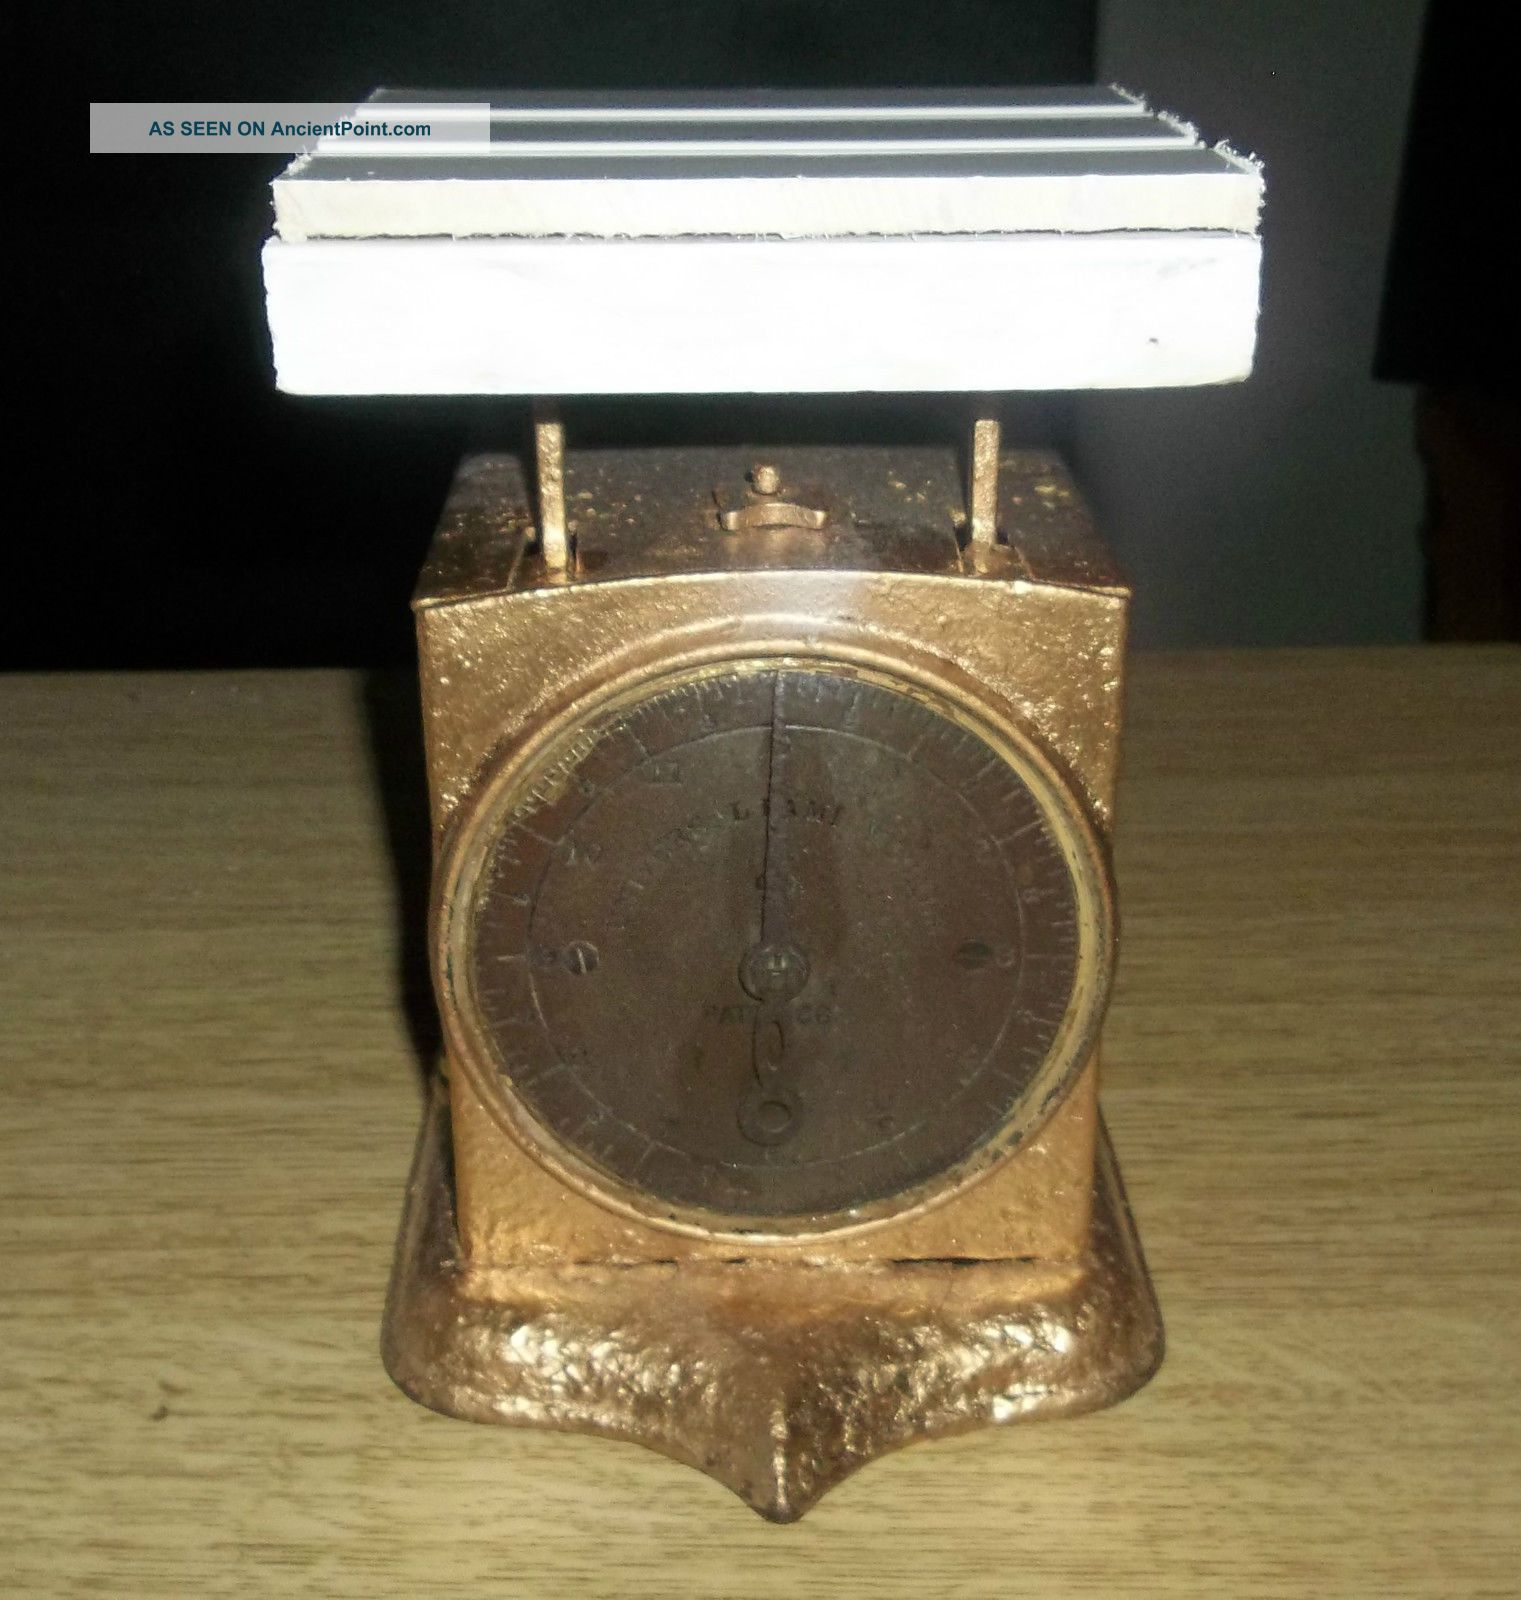 1865 Antique Universal Family Metal Face Kitchen Scale 12 Lbs Vintage